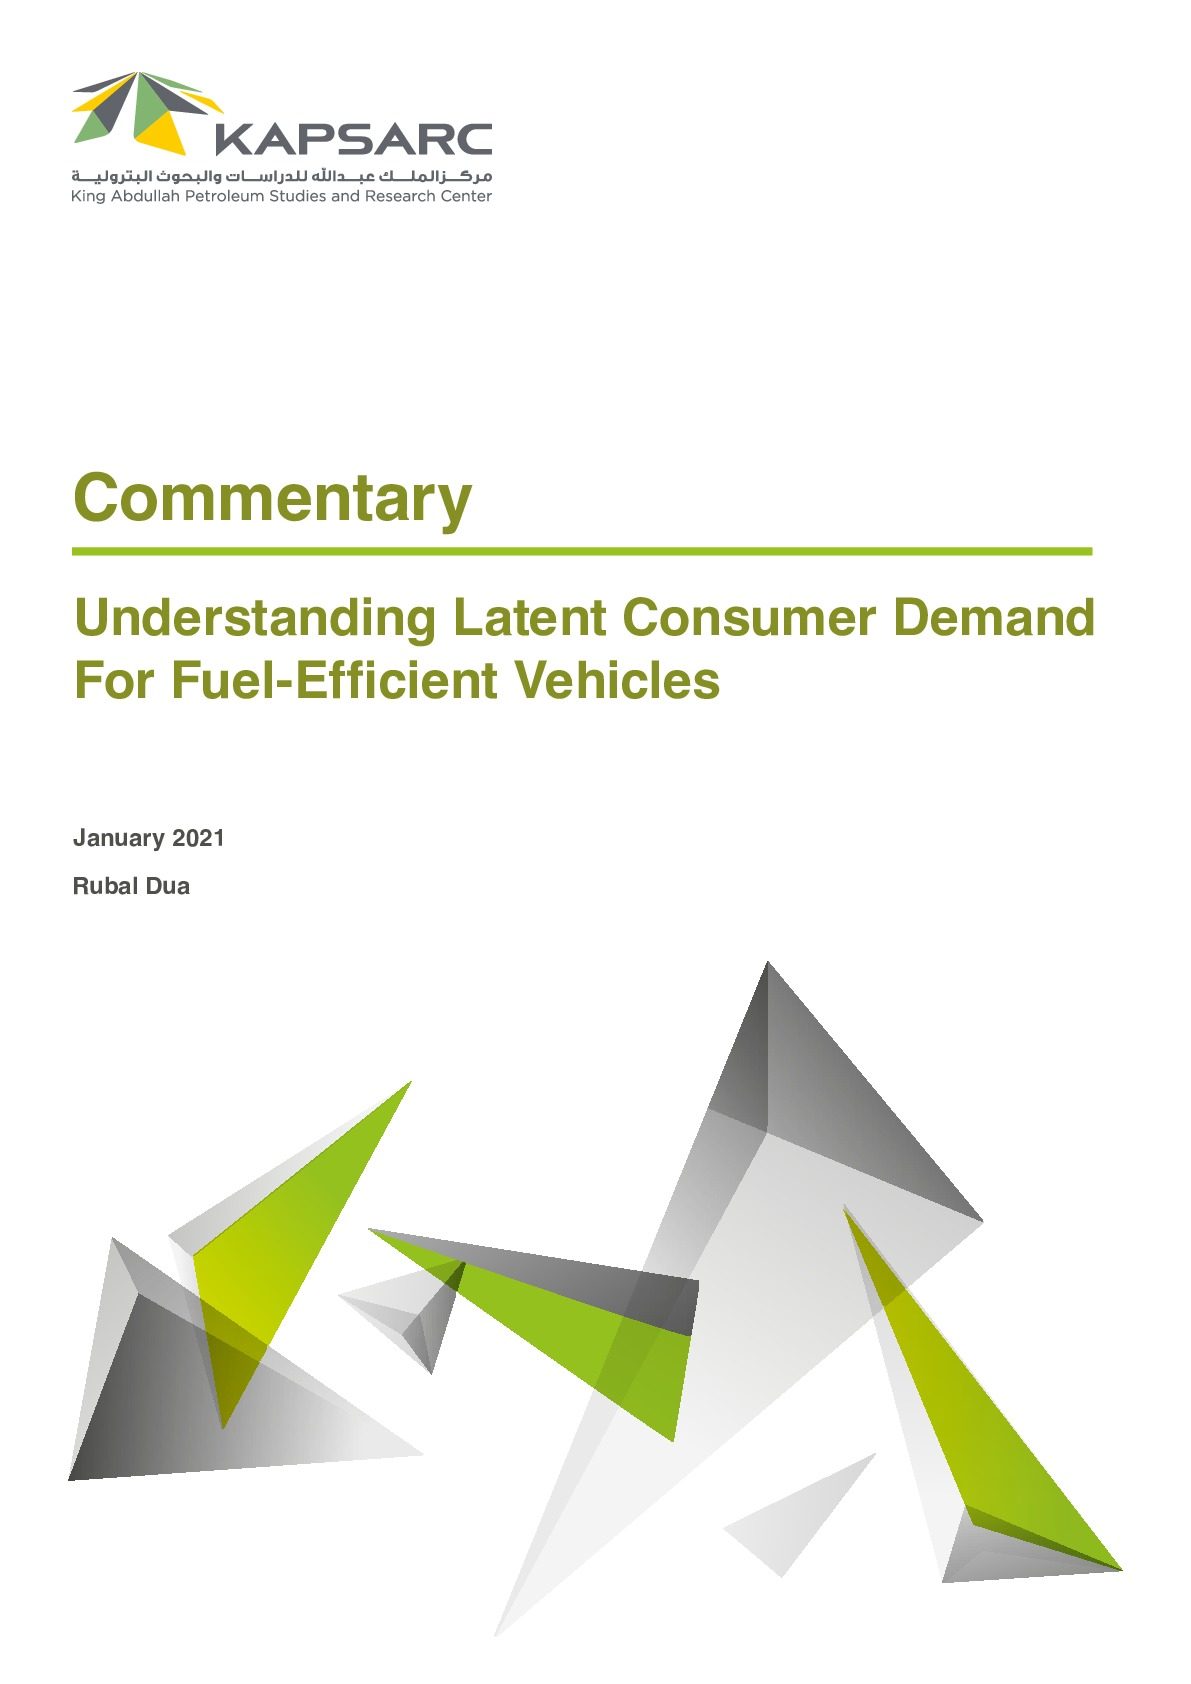 Understanding Latent Consumer Demand For Fuel-Efficient Vehicles